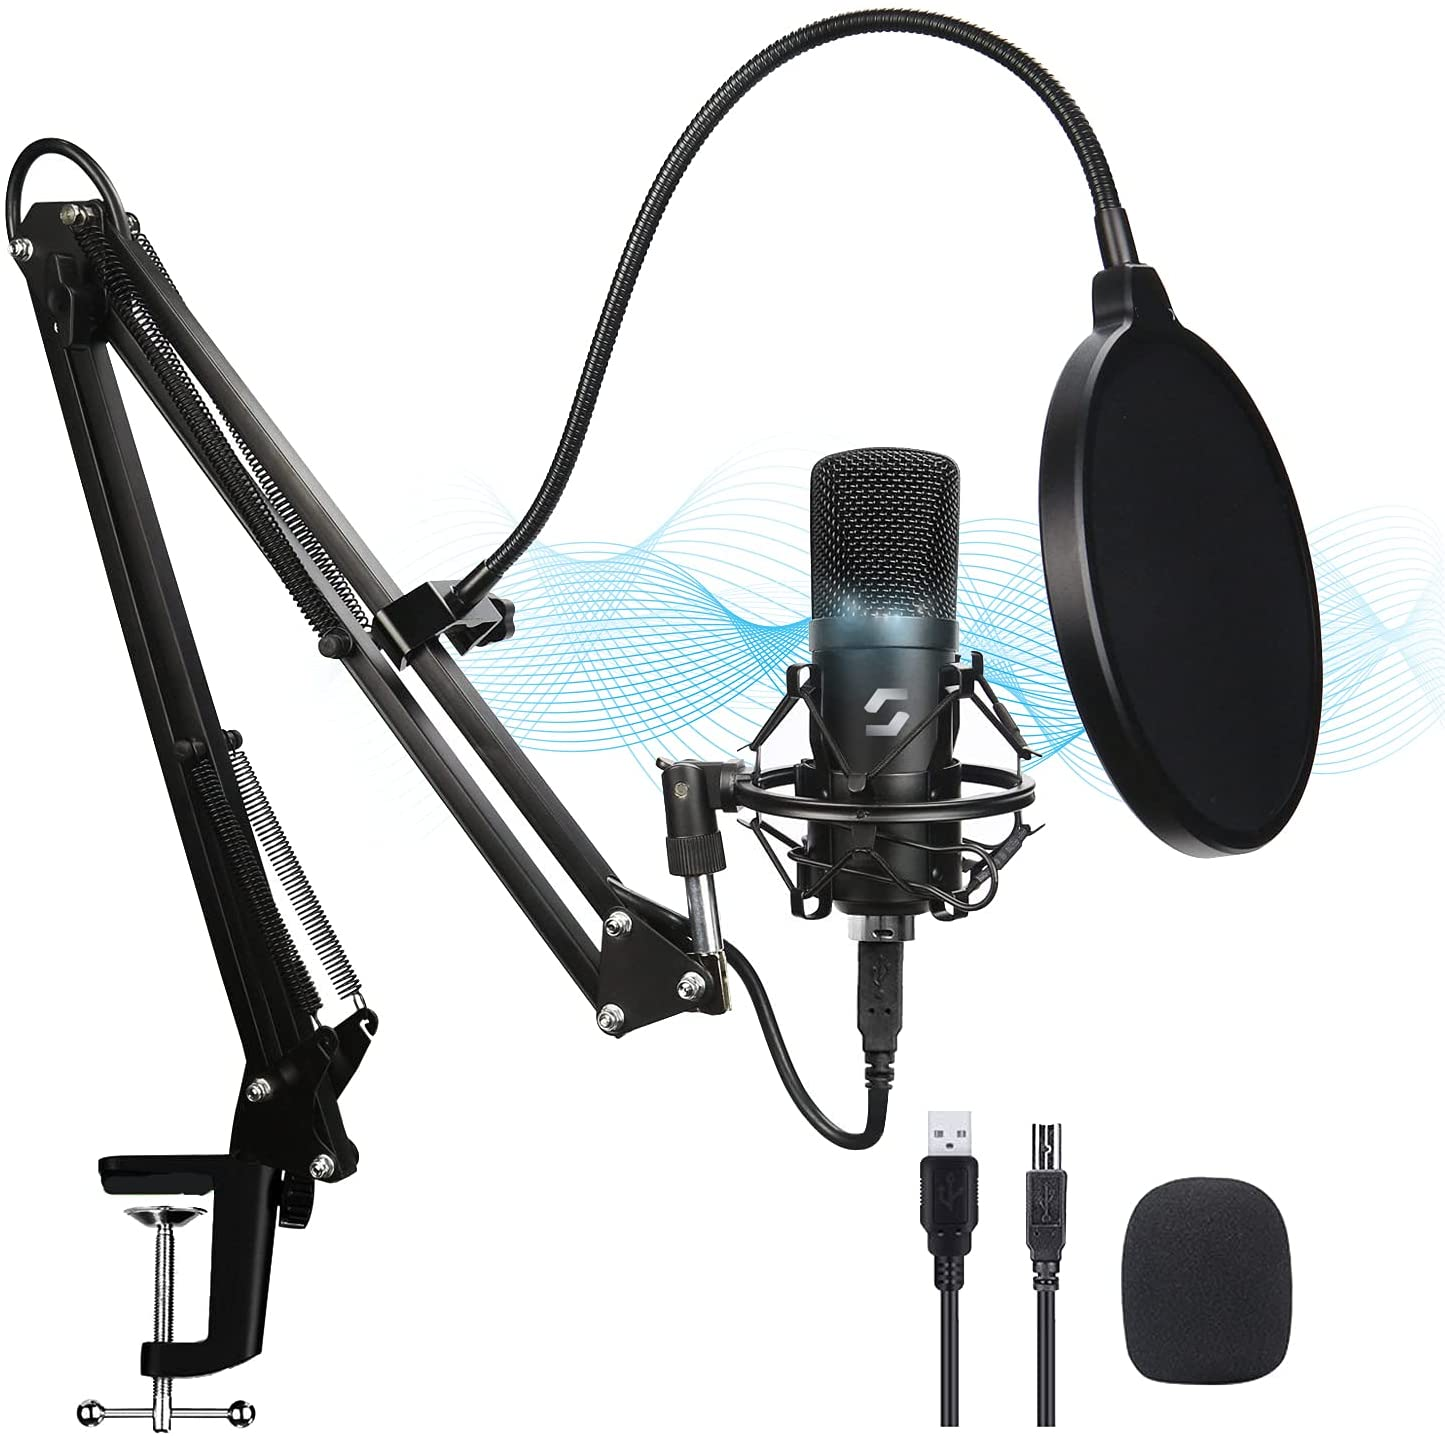 USB Microphone Regular discount Kit Professional Albuquerque Mall Streaming PC Podcast Condenser